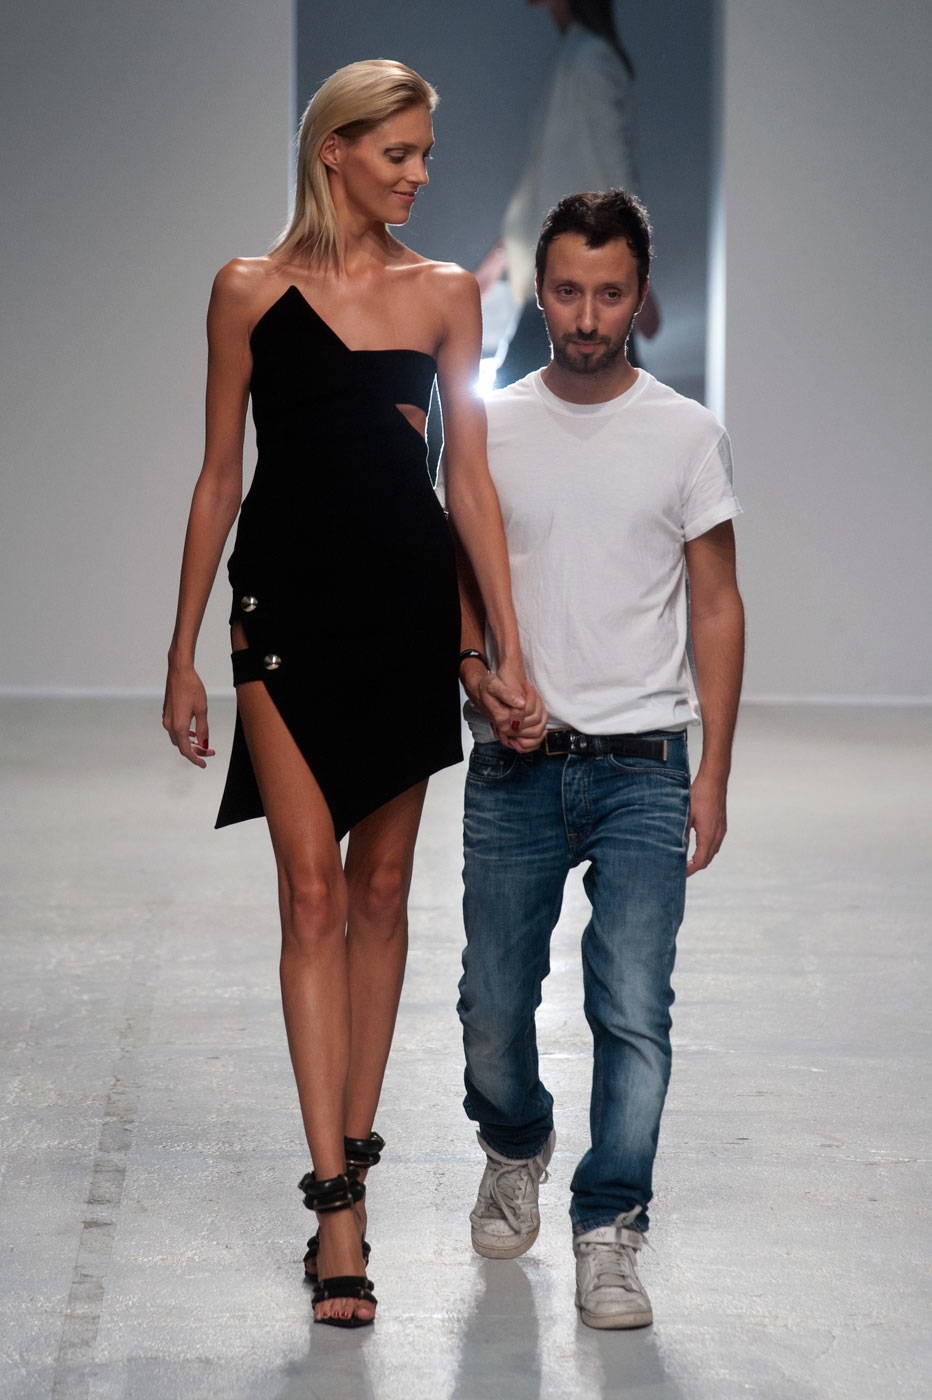 anthony vacarello versace Anthony Vaccarello to Design Next Versus Versace Capsule Collection